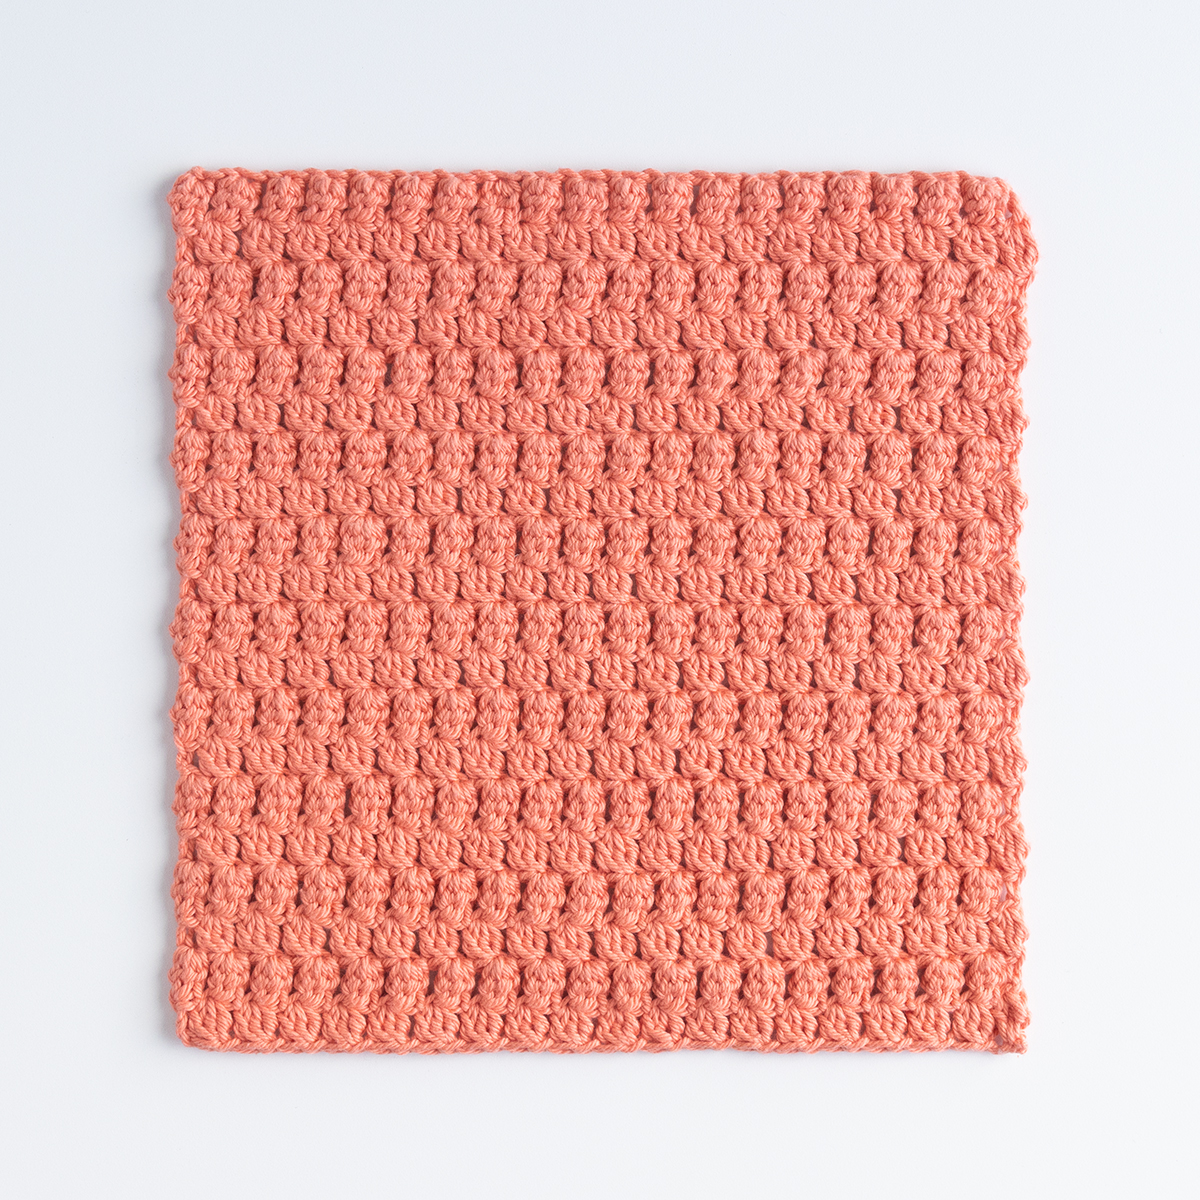 Little Leaves Crochet Dishcloth Knitting Patterns And Crochet